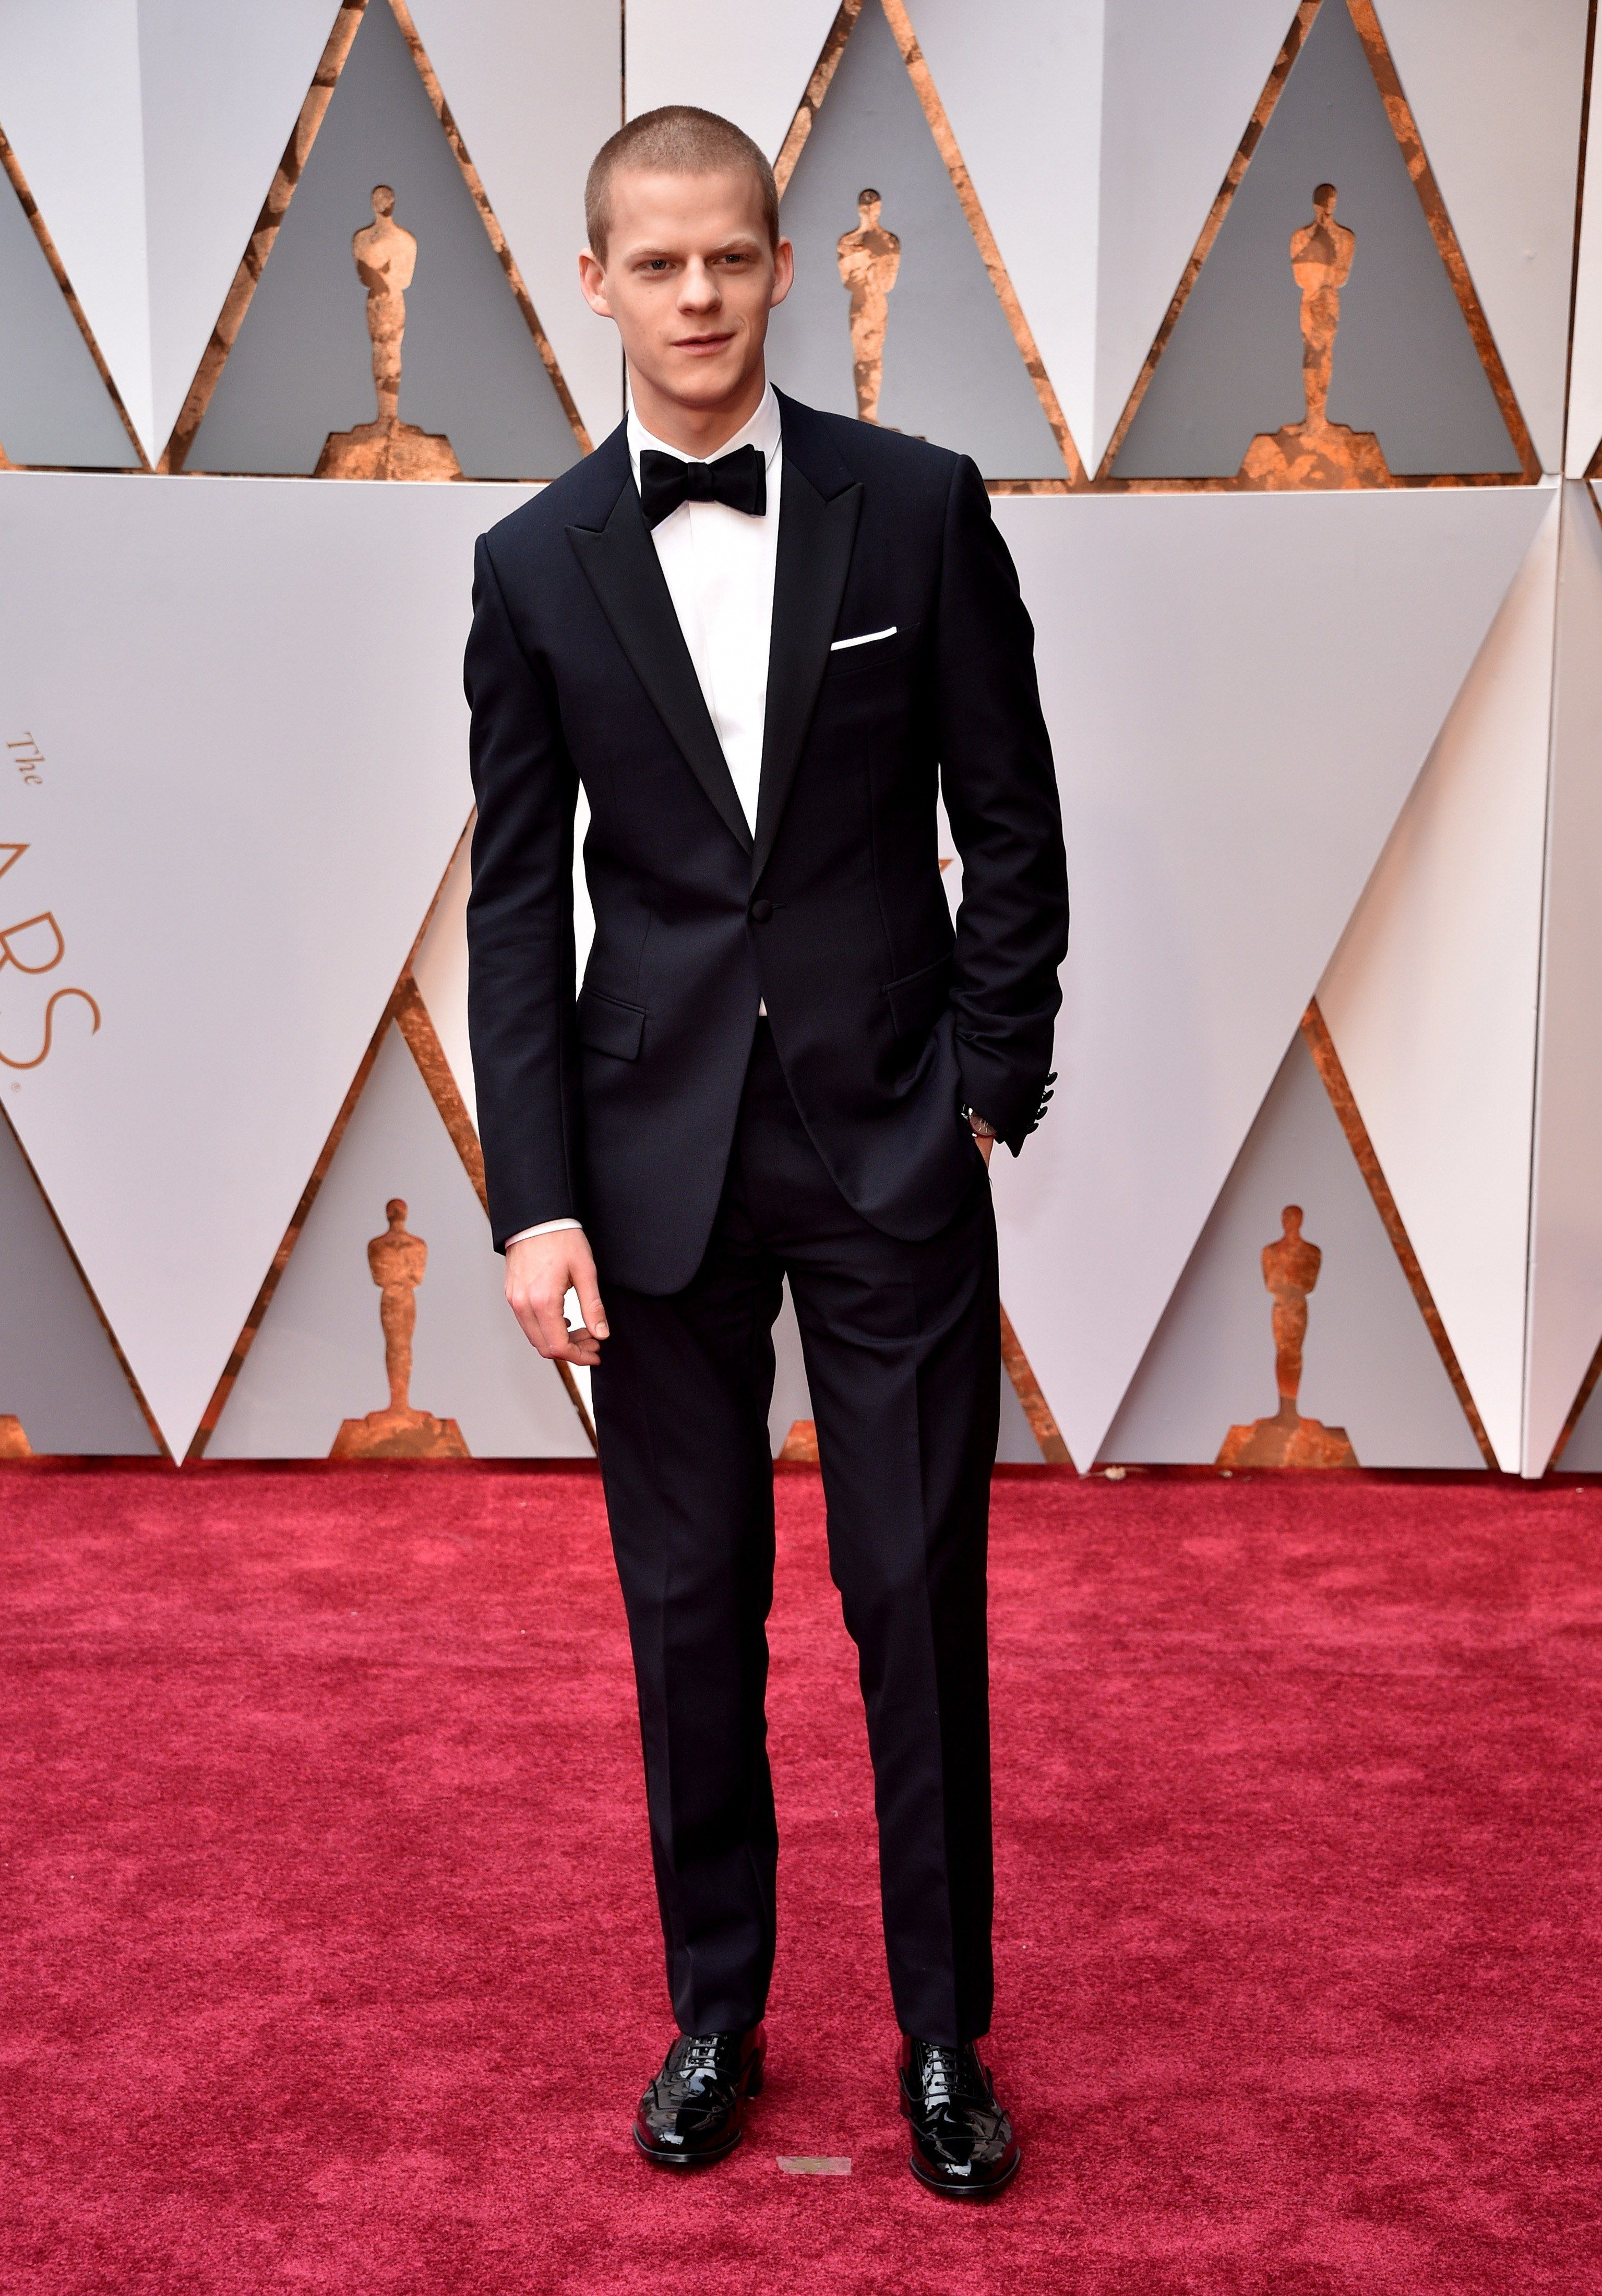 Oscars 2017 Fashion Live From The Red Carpet Red Carpet Oscars Oscars 2017 Red Carpet Oscar 2017 Dresses